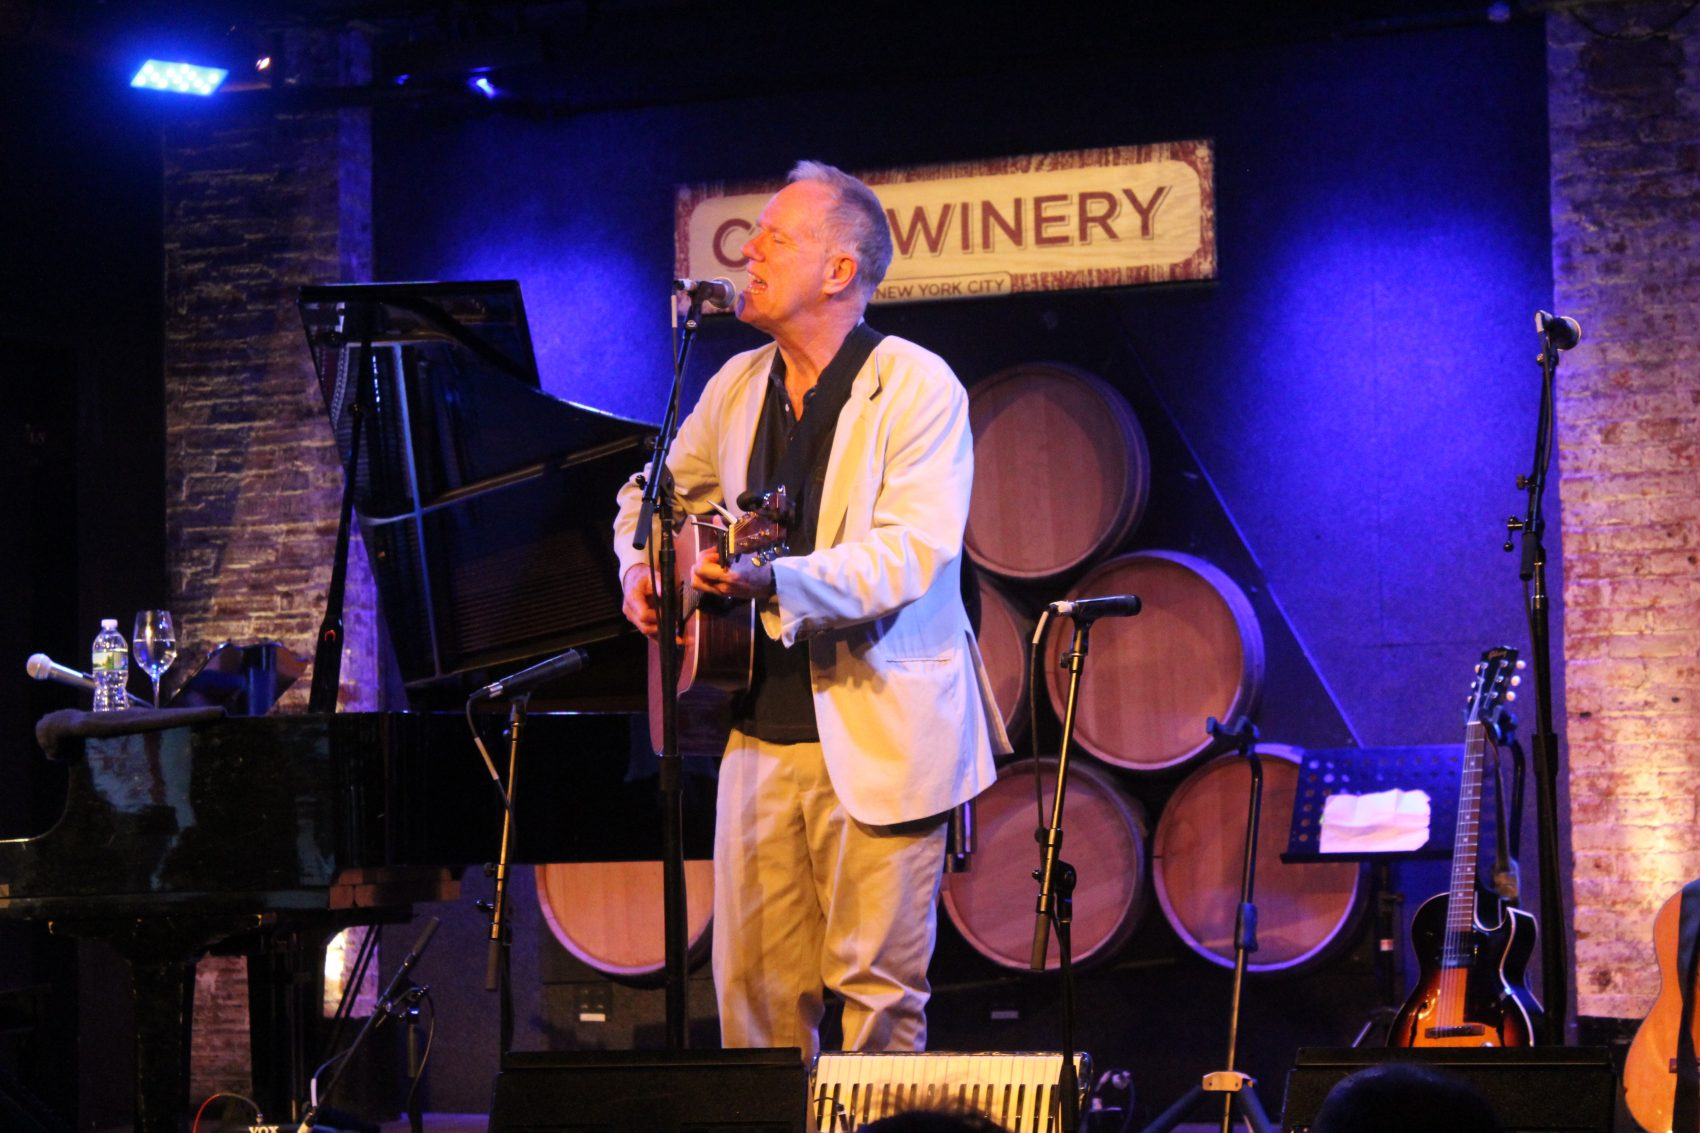 City Winery A Club Where You Can Drink In Live Music And Wine Finally To Open In Boston The